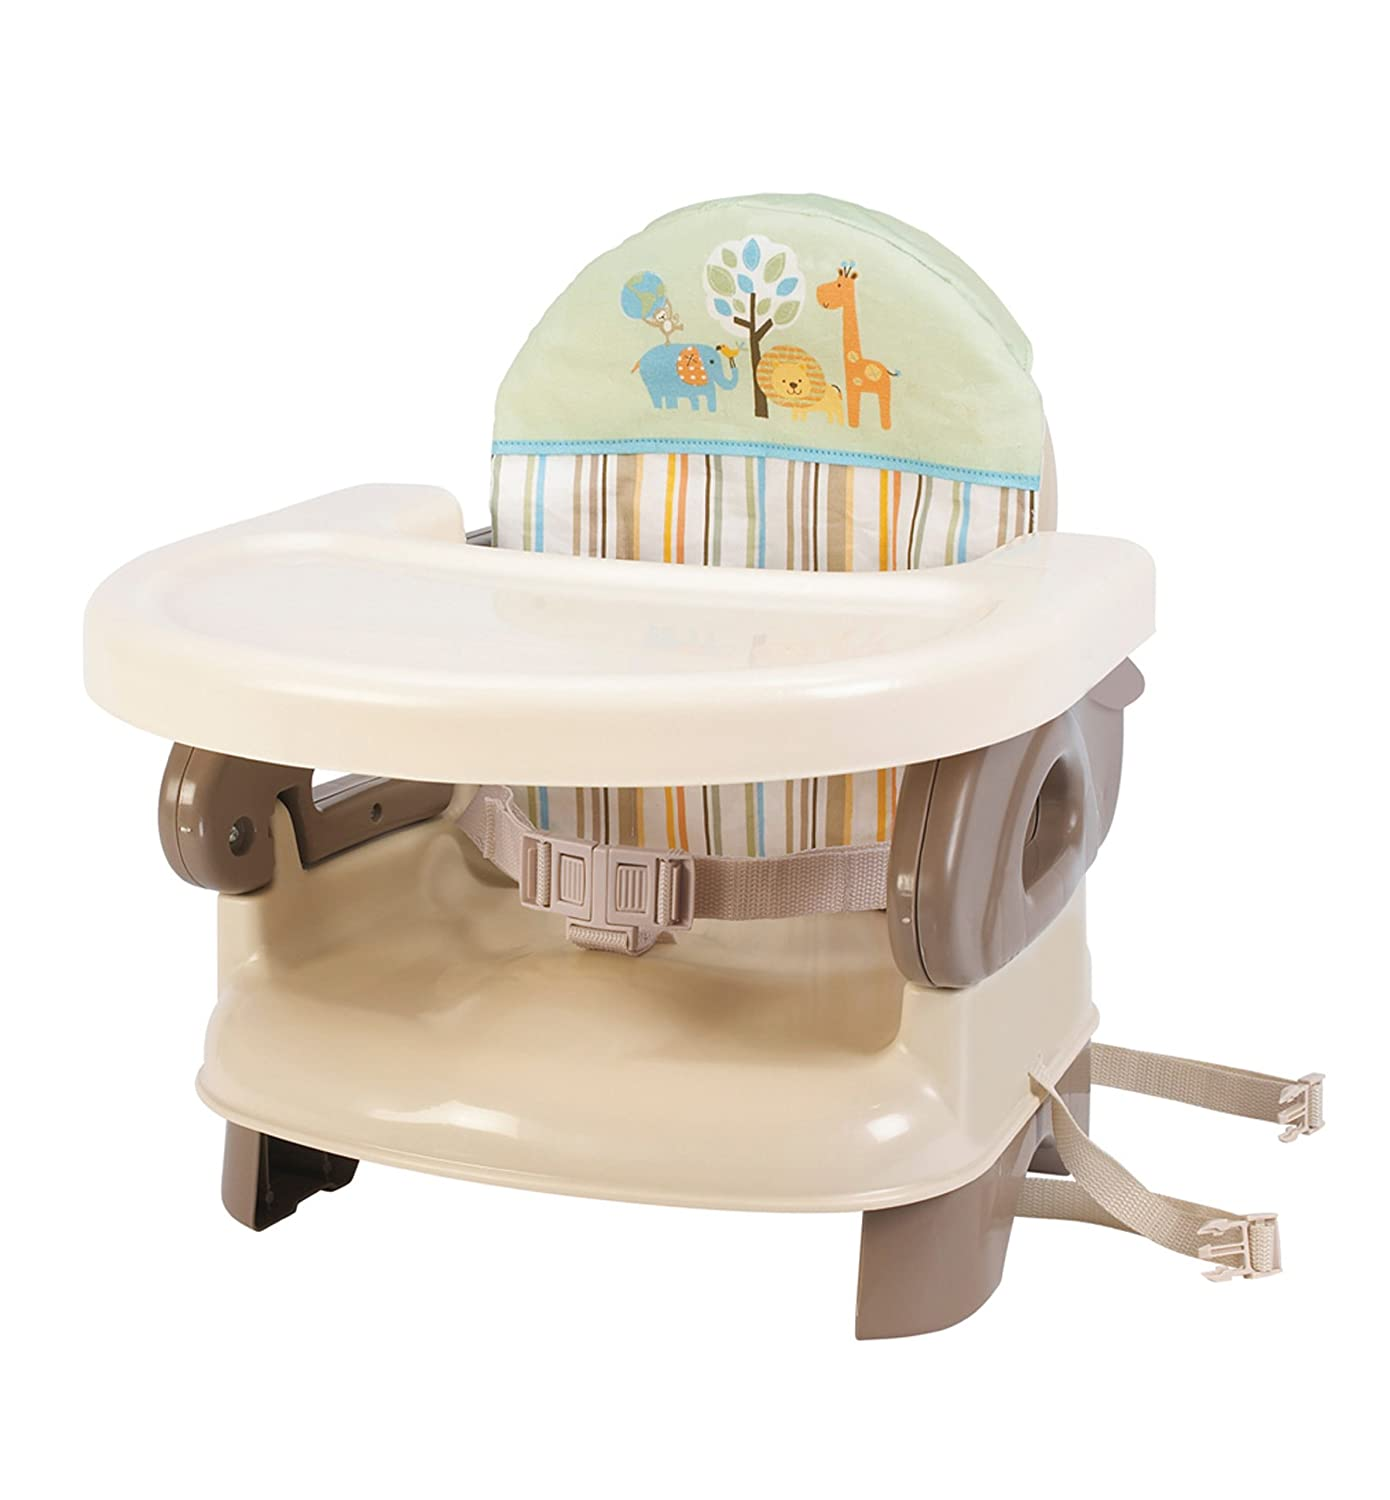 Baby Chair Summer Infant Deluxe Comfort Booster Baby Seat Toddler